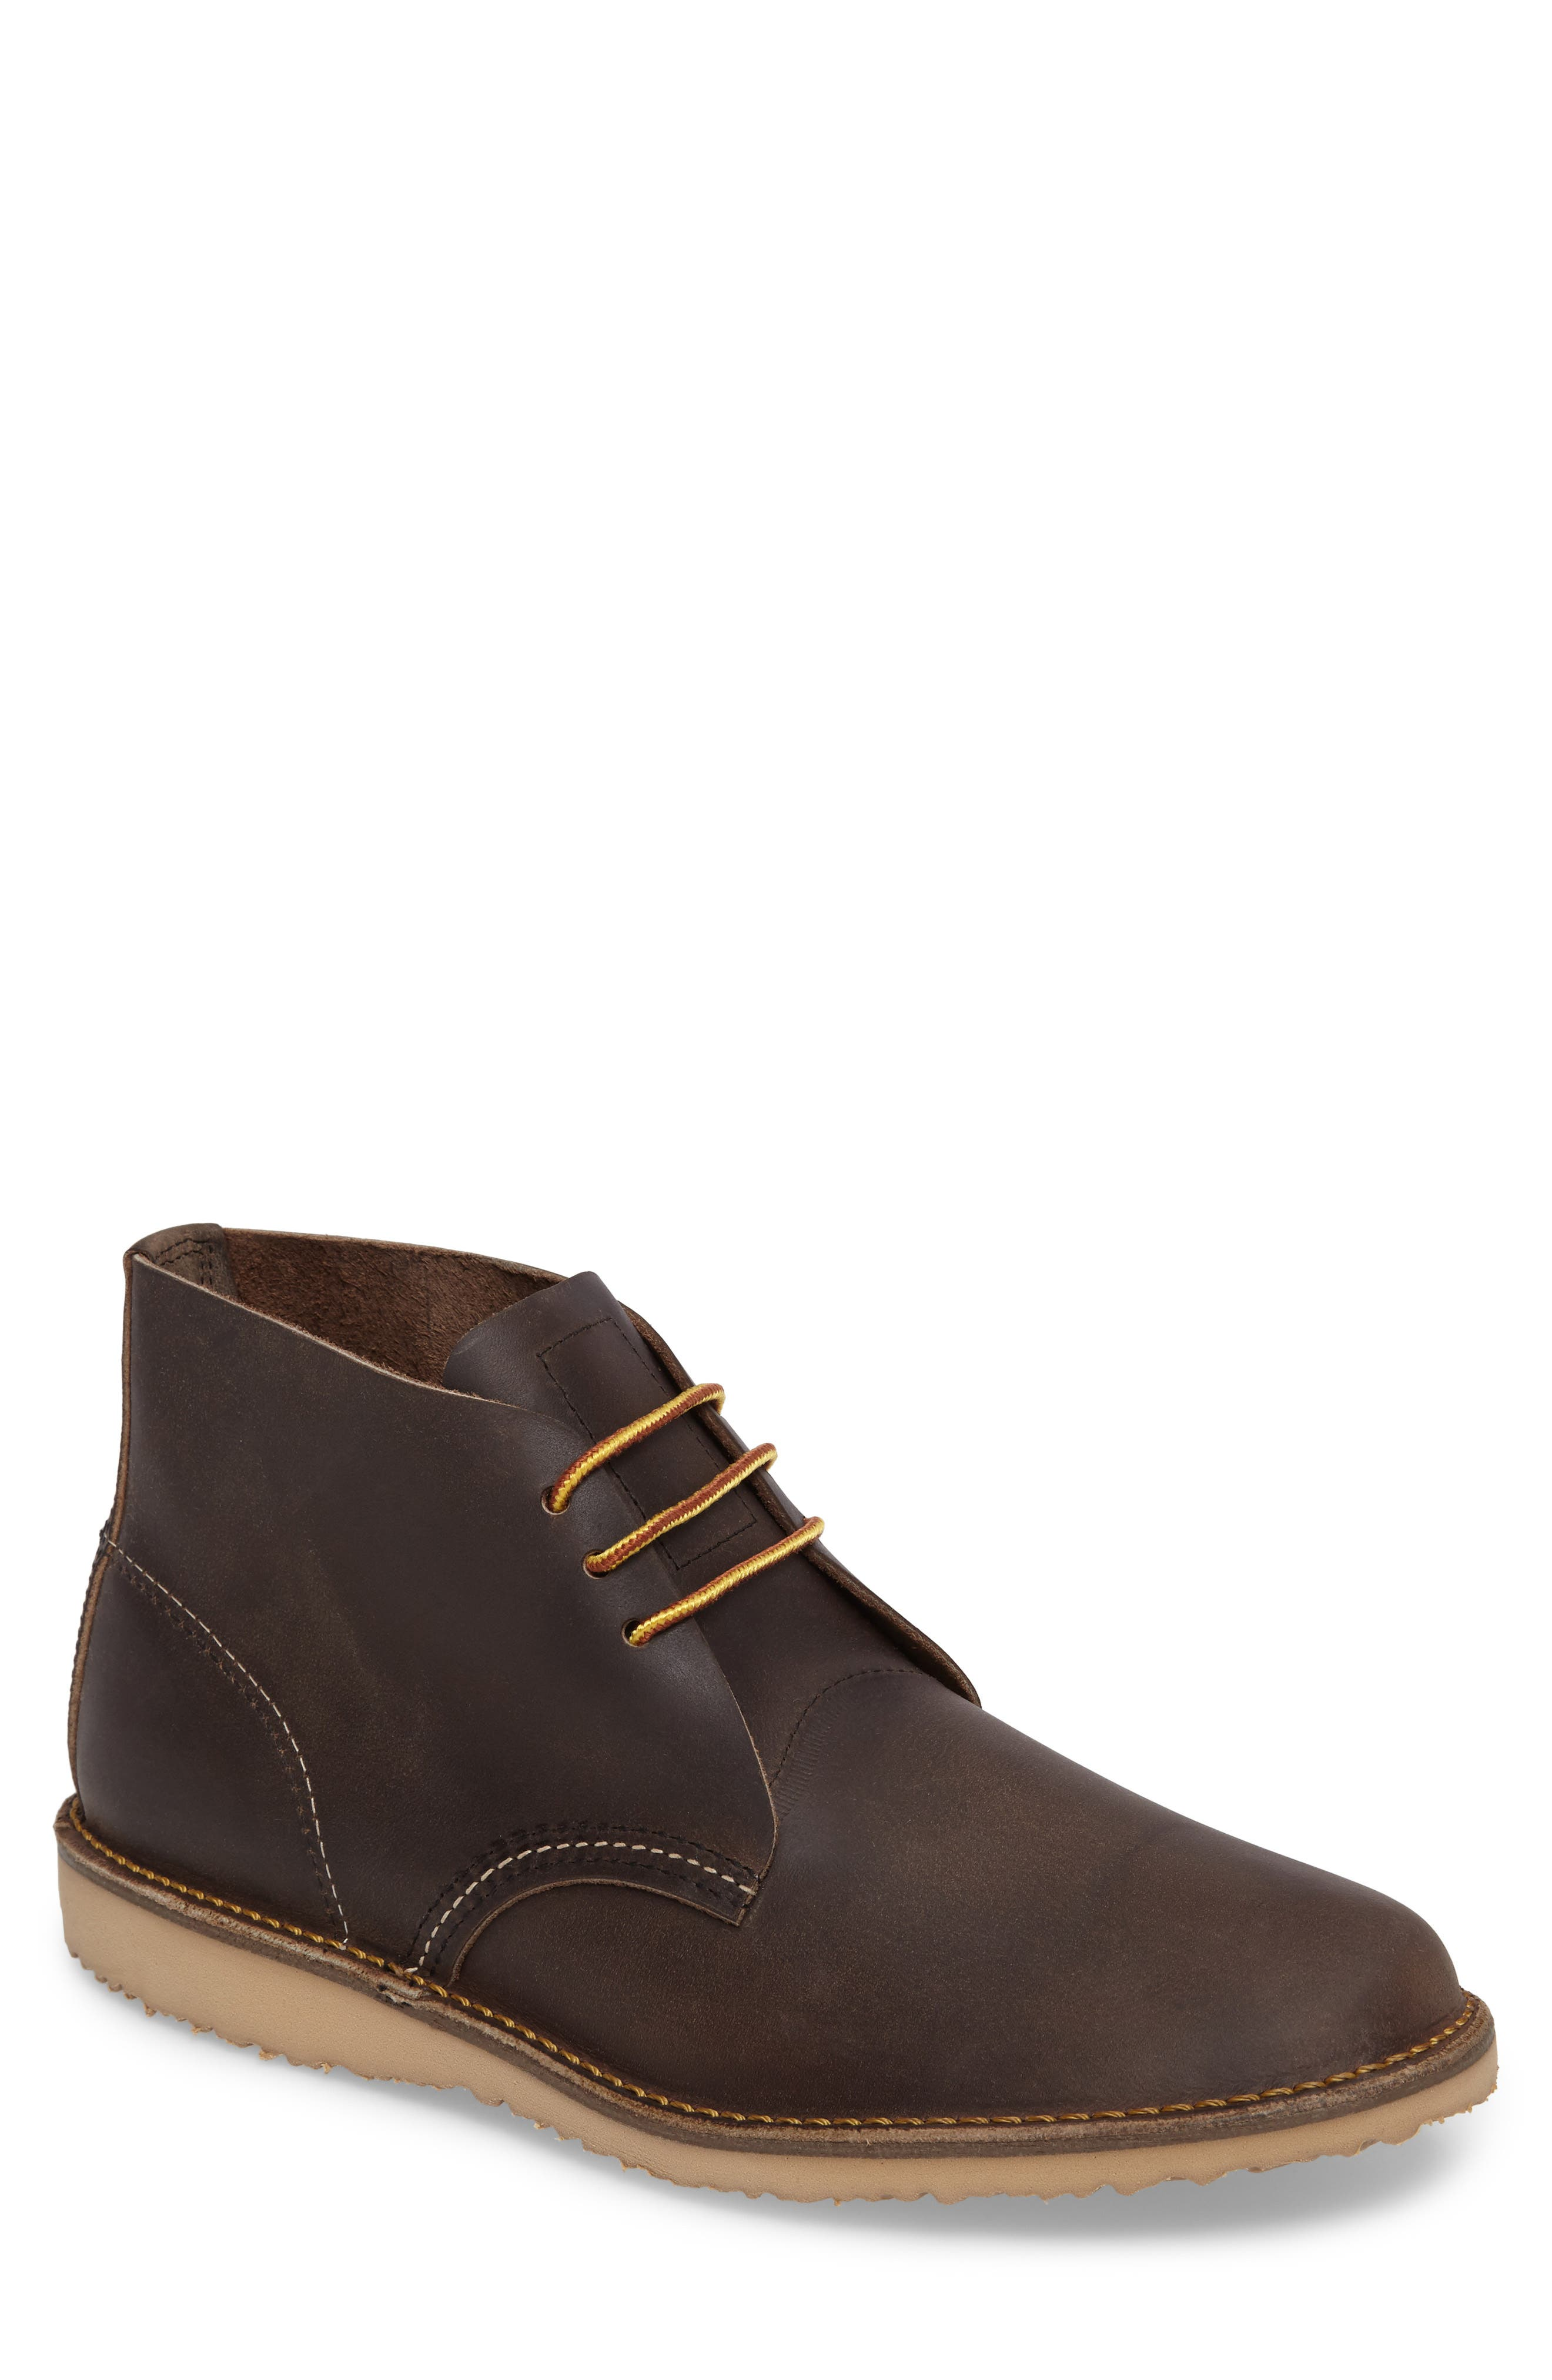 Chukka Boot,                             Main thumbnail 1, color,                             Concrete Leather